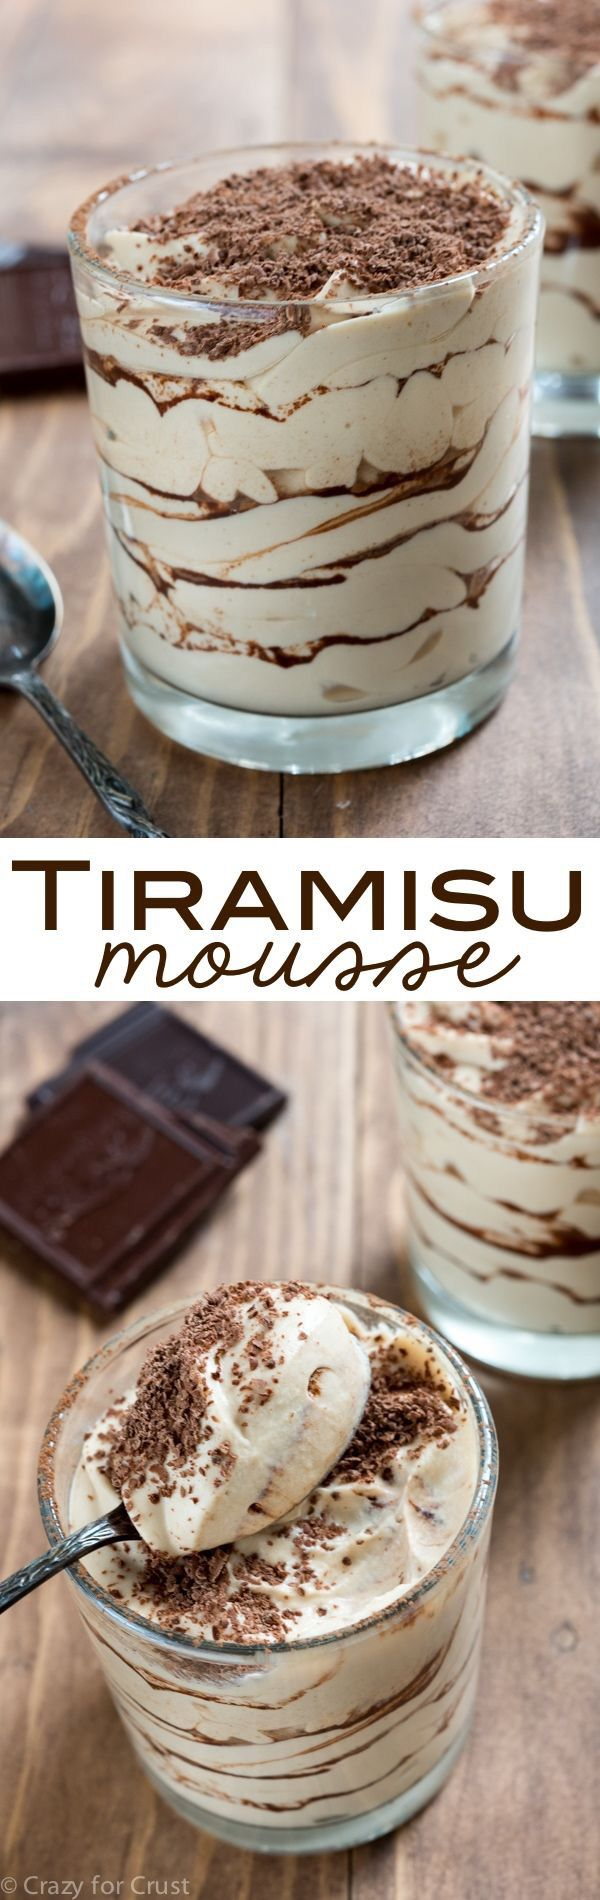 Best 10+ Easy chocolate desserts ideas on Pinterest | Chocolate ...